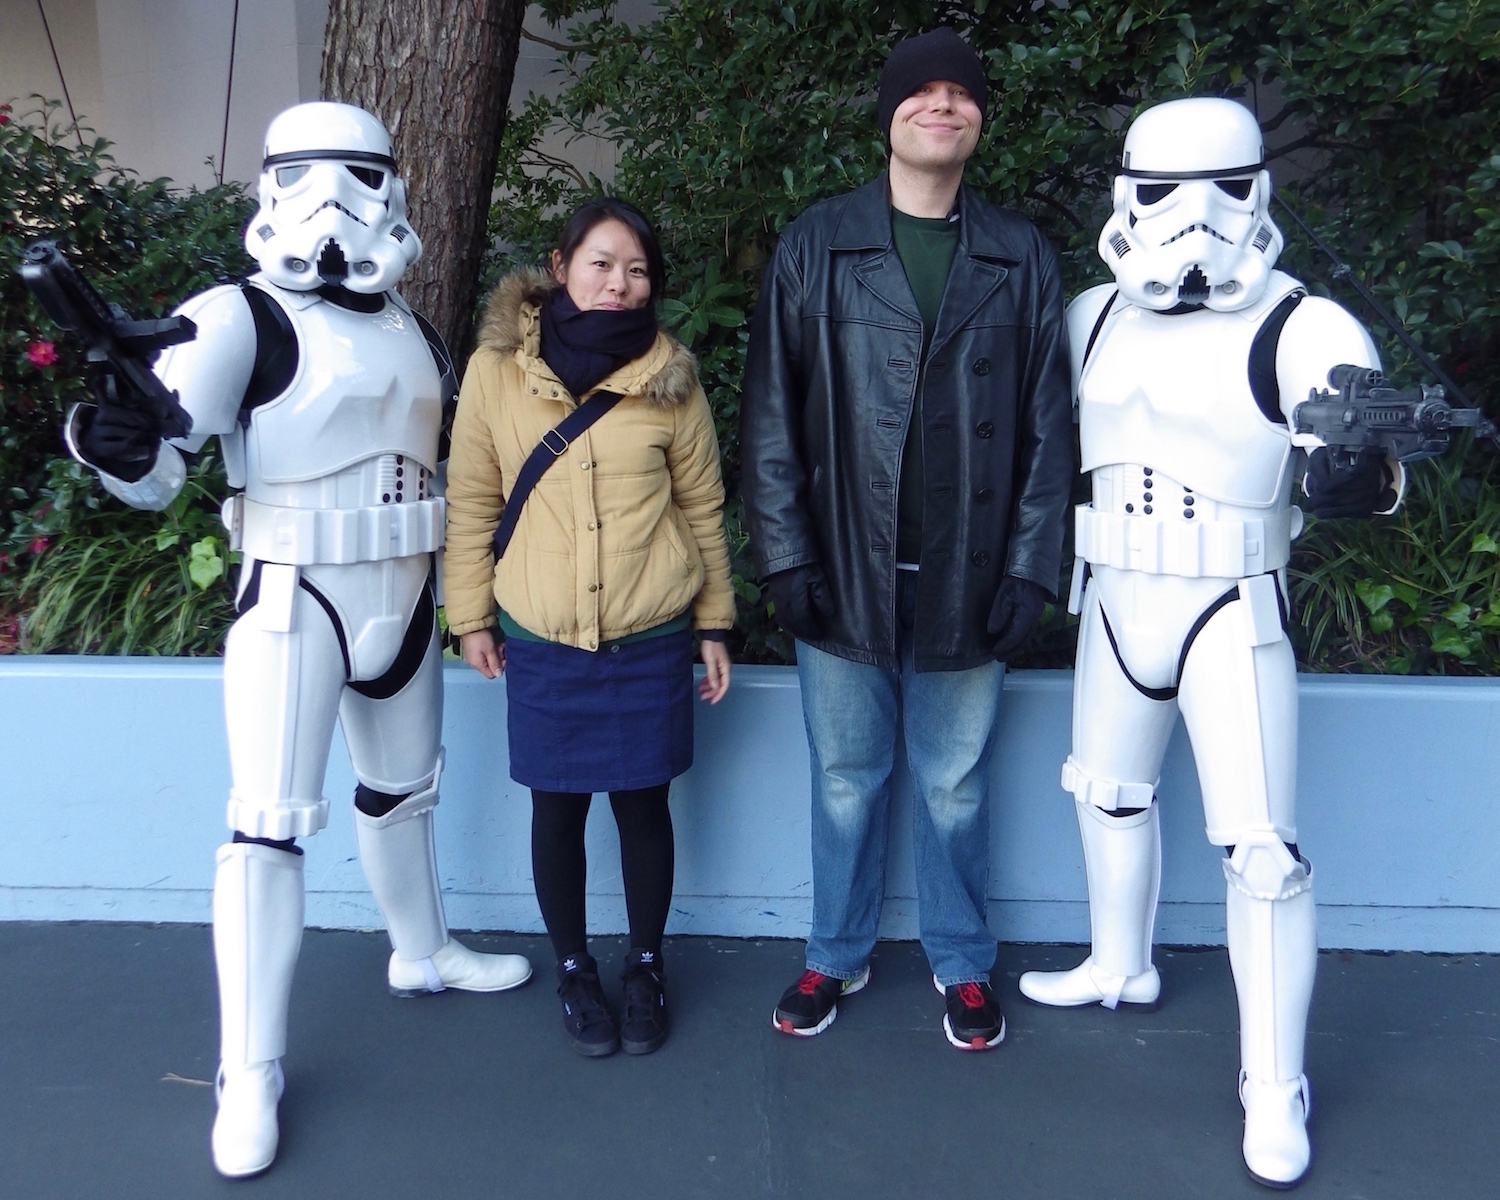 Brightbill with his girlfriend (real, not imaginary this time) and two Stormtroopers at Tokyo Disneyland.